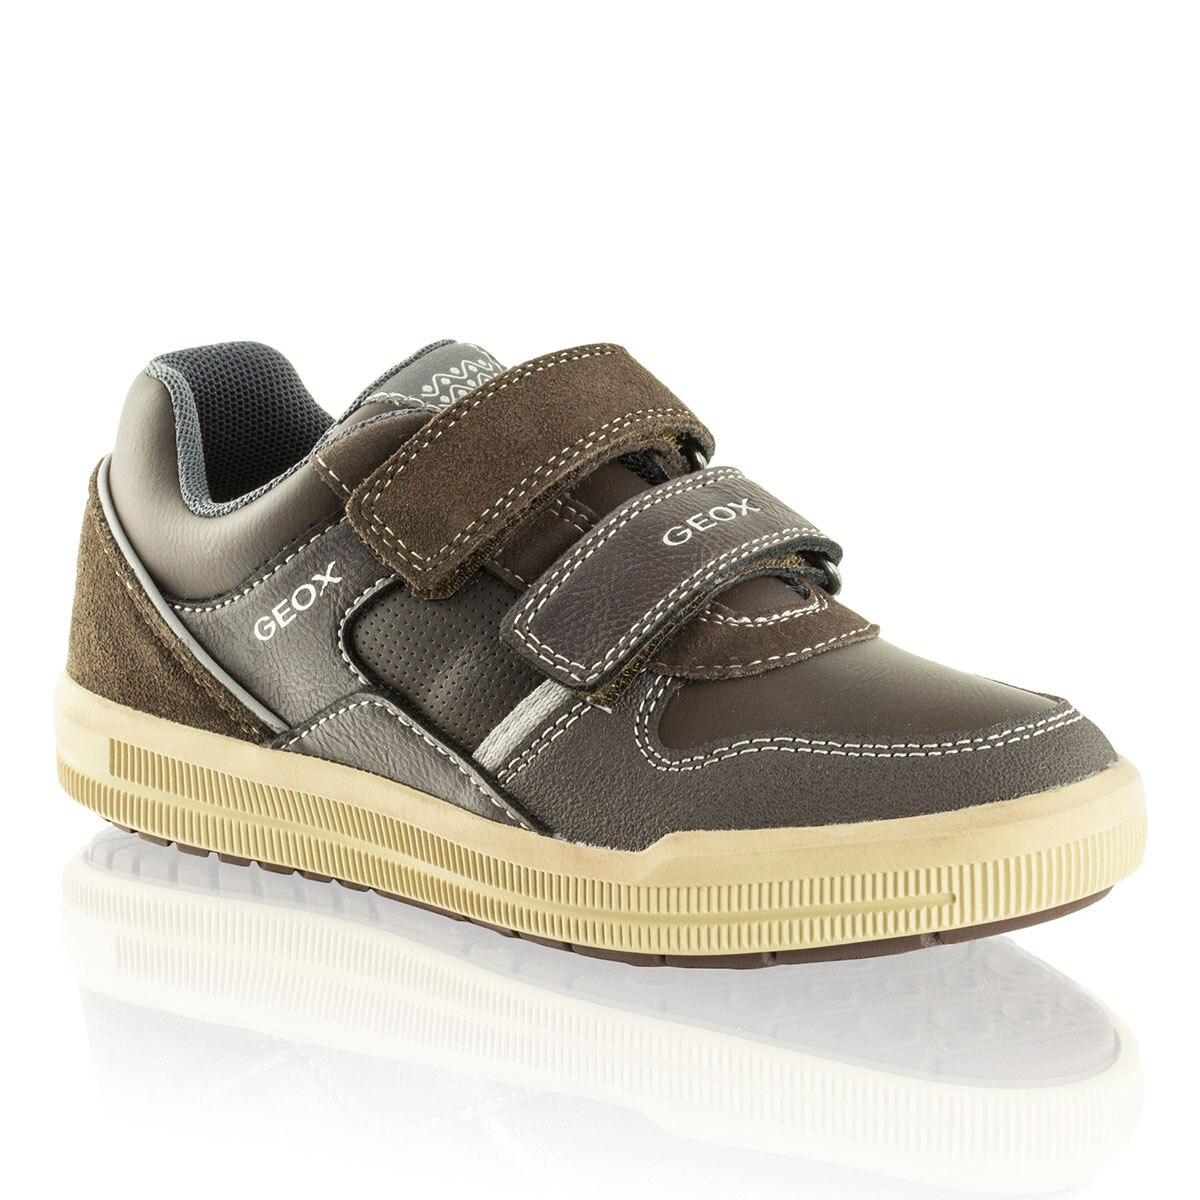 Russell and Bromley J ARZACH Double Velcro Sneaker